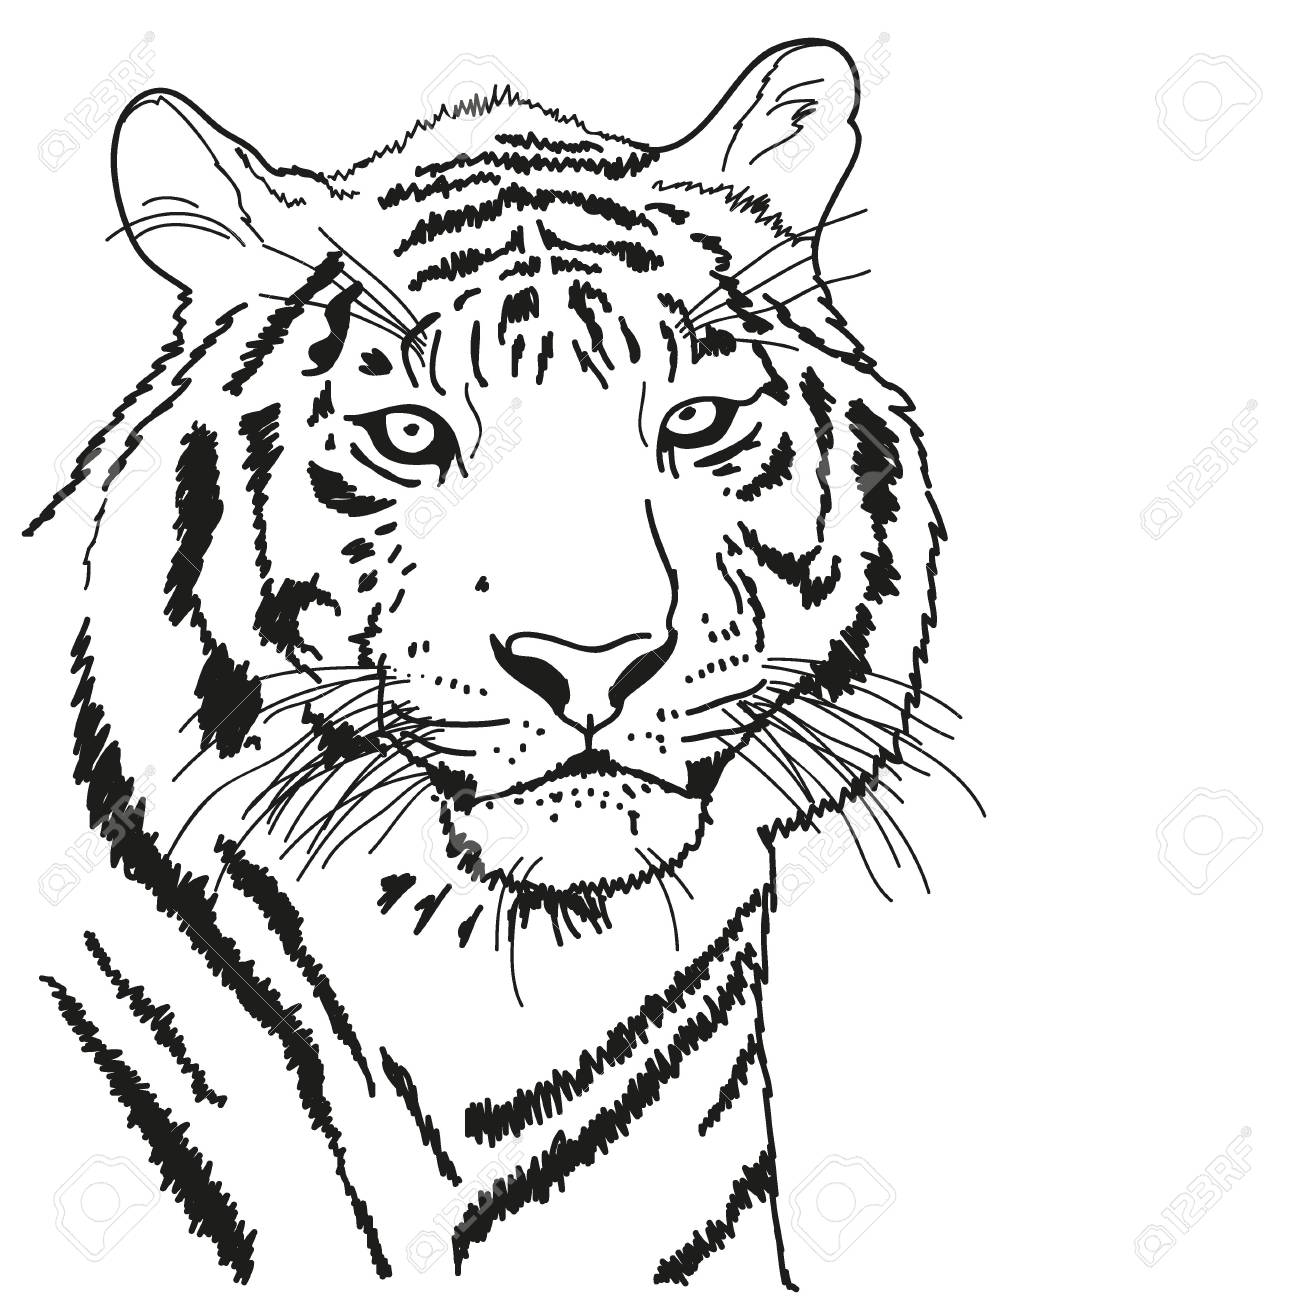 Tiger Drawn With A Black Outline Coloring Book